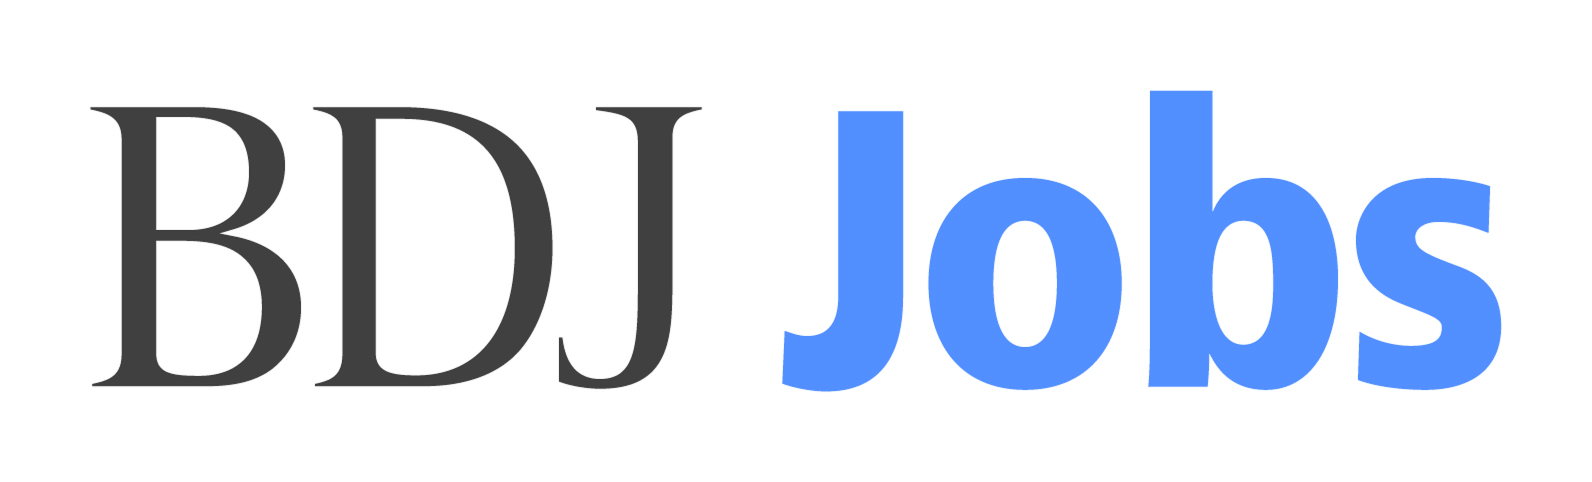 Headline Show Sponsor The British Dental Journal Jobs at the The British Dental Conference and Dentistry show